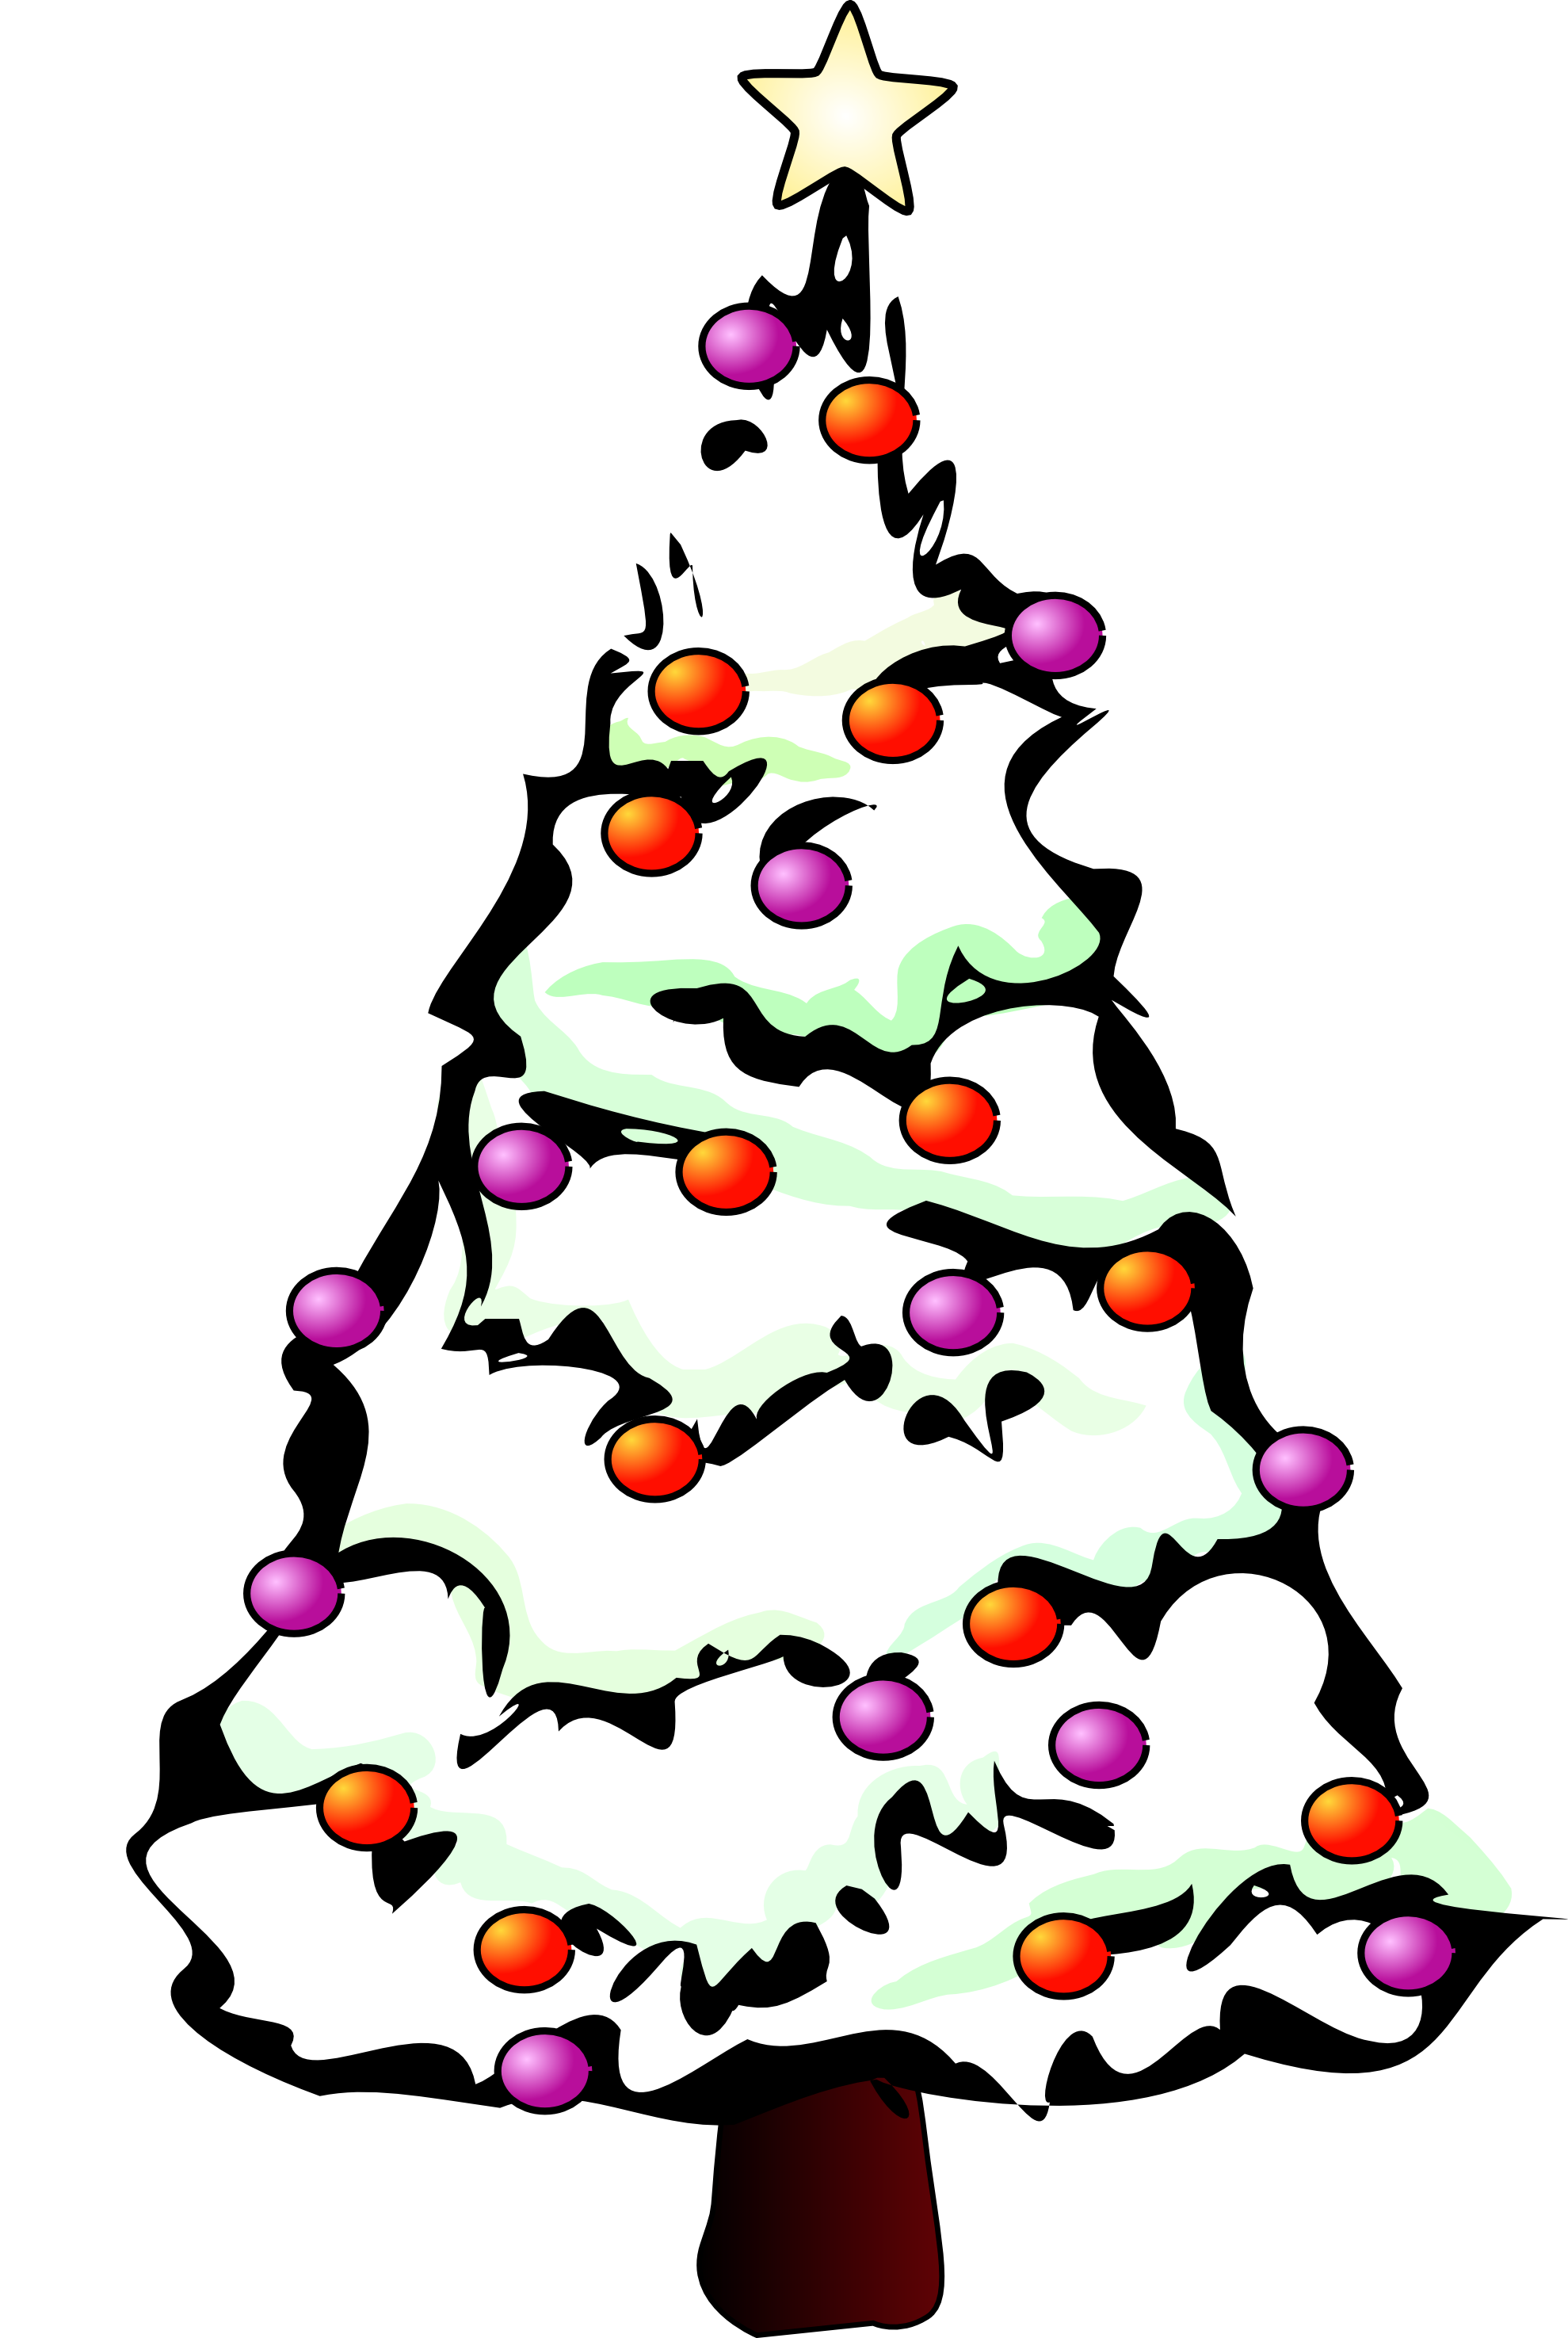 Free White Christmas Tree Images, Download Free Clip Art.